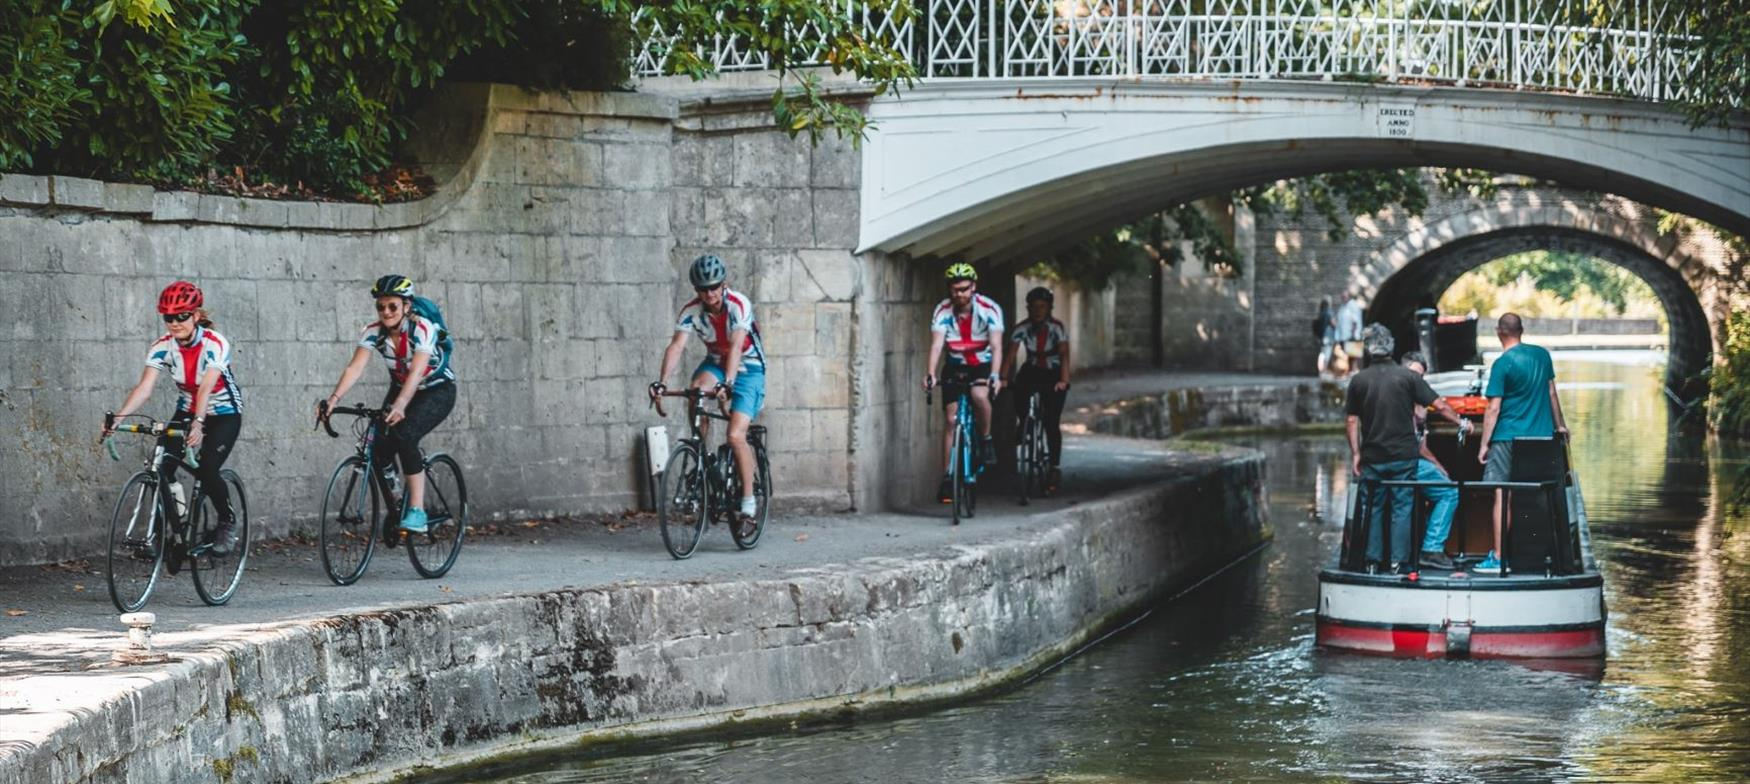 Activities with Active England, including cycling